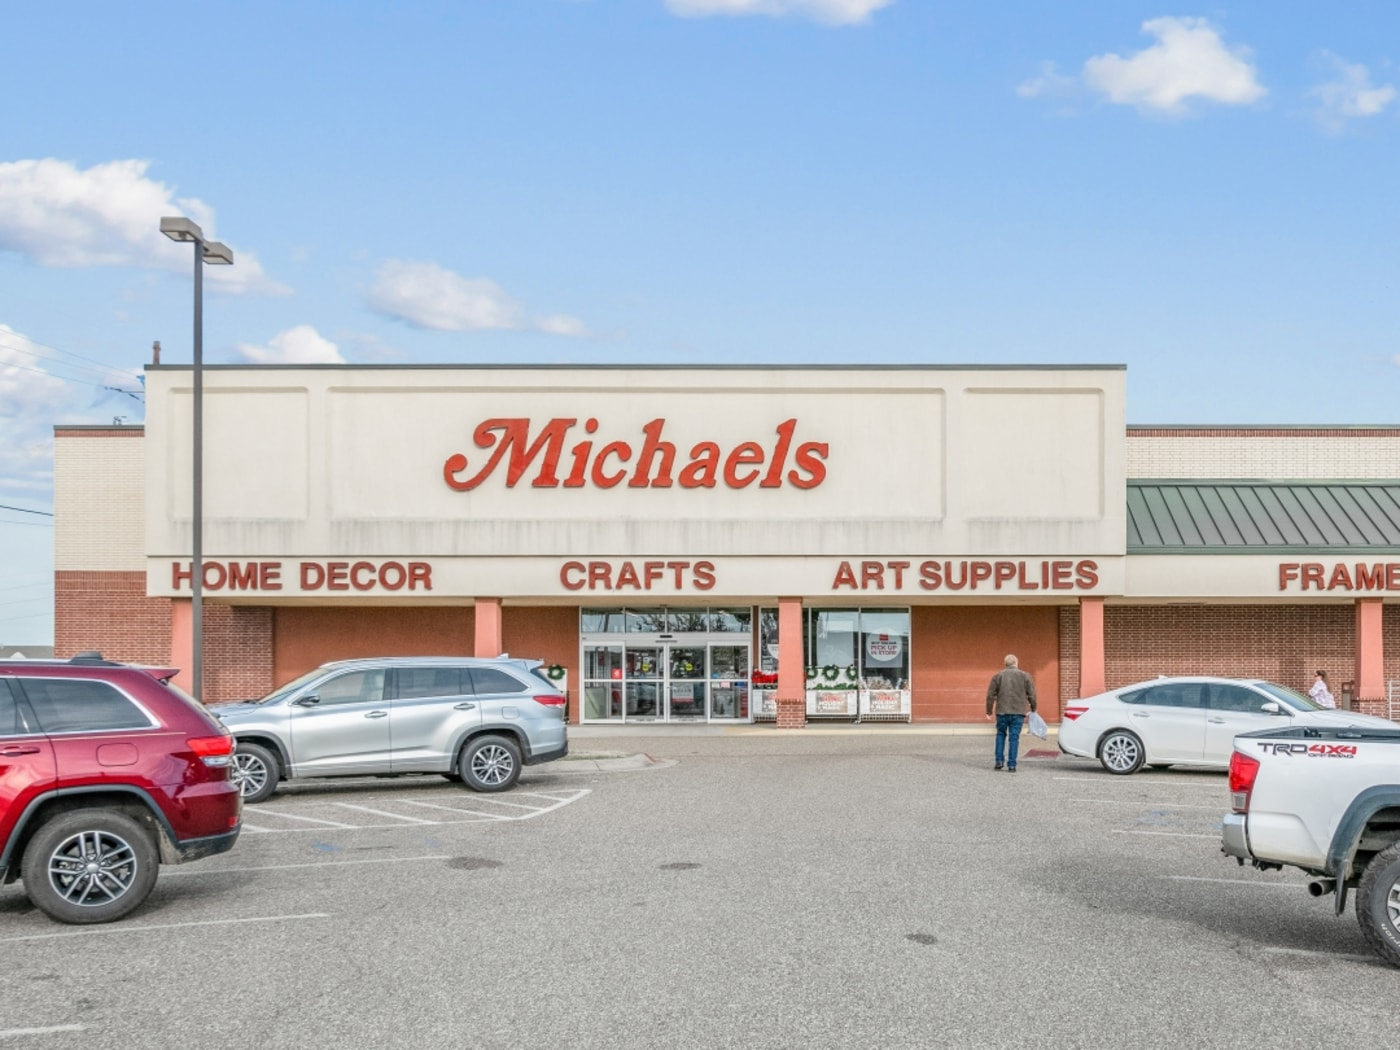 Michaels Texarkana Tx Property For Sale Texarkana Jll